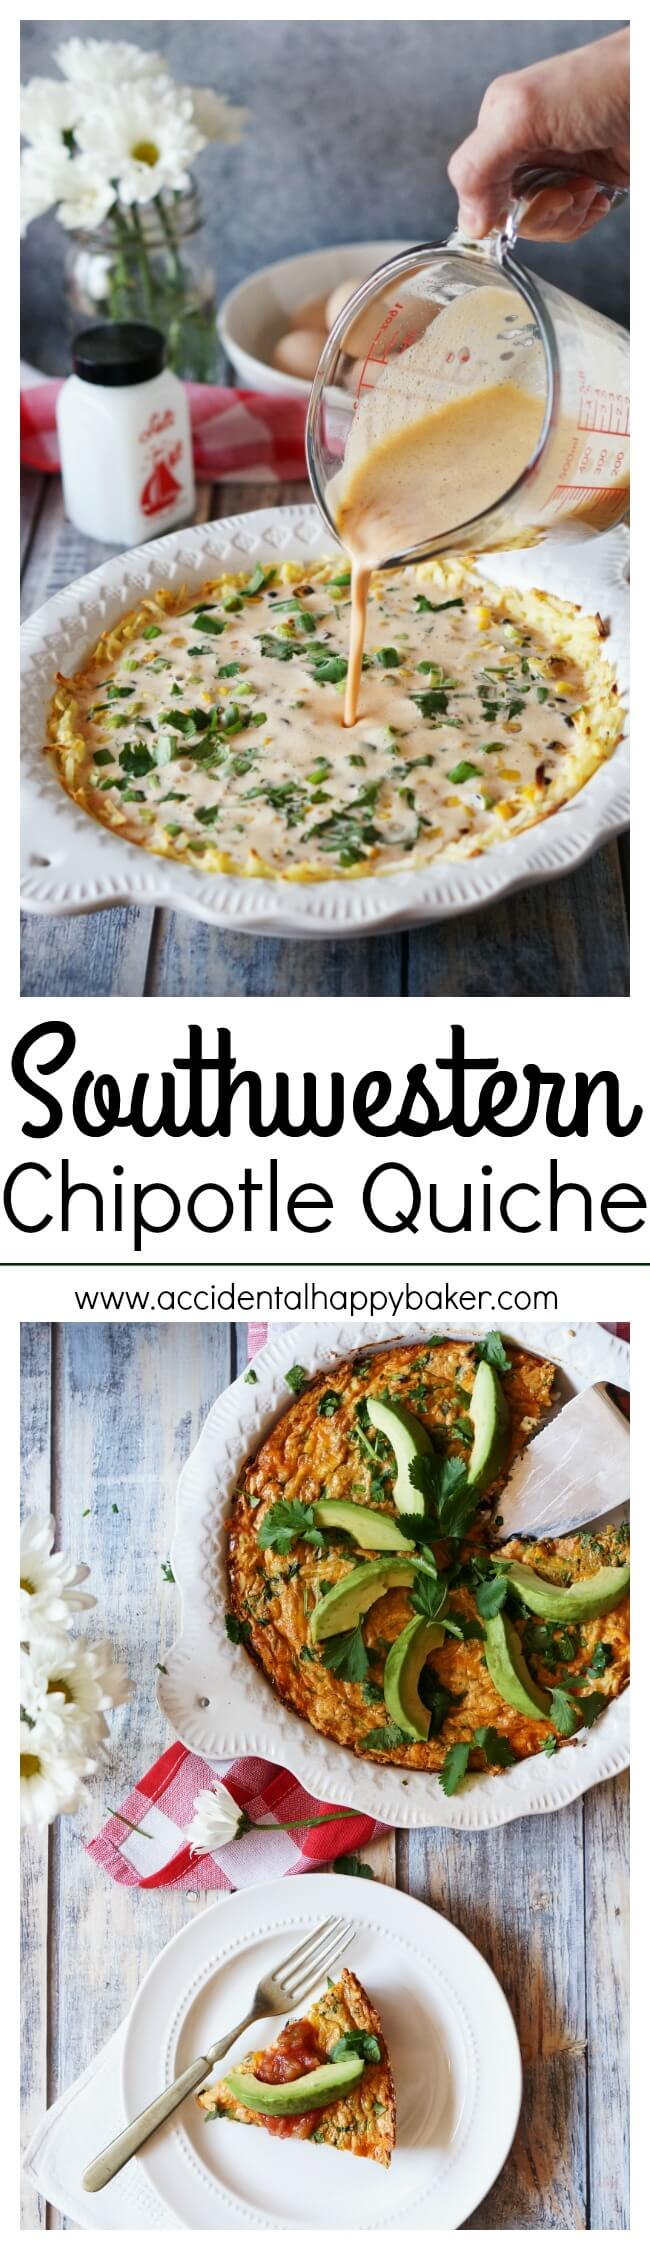 Spicy and smoky chipotles bring the flavor in this veggie loaded Southwestern Chipotle Quiche. Full of roasted corn, black beans, green onions, cheddar and a hashbrown potato crust. Recipe on www.accidentalhappybaker.com @AHBamy #ad #VivaLaMorena